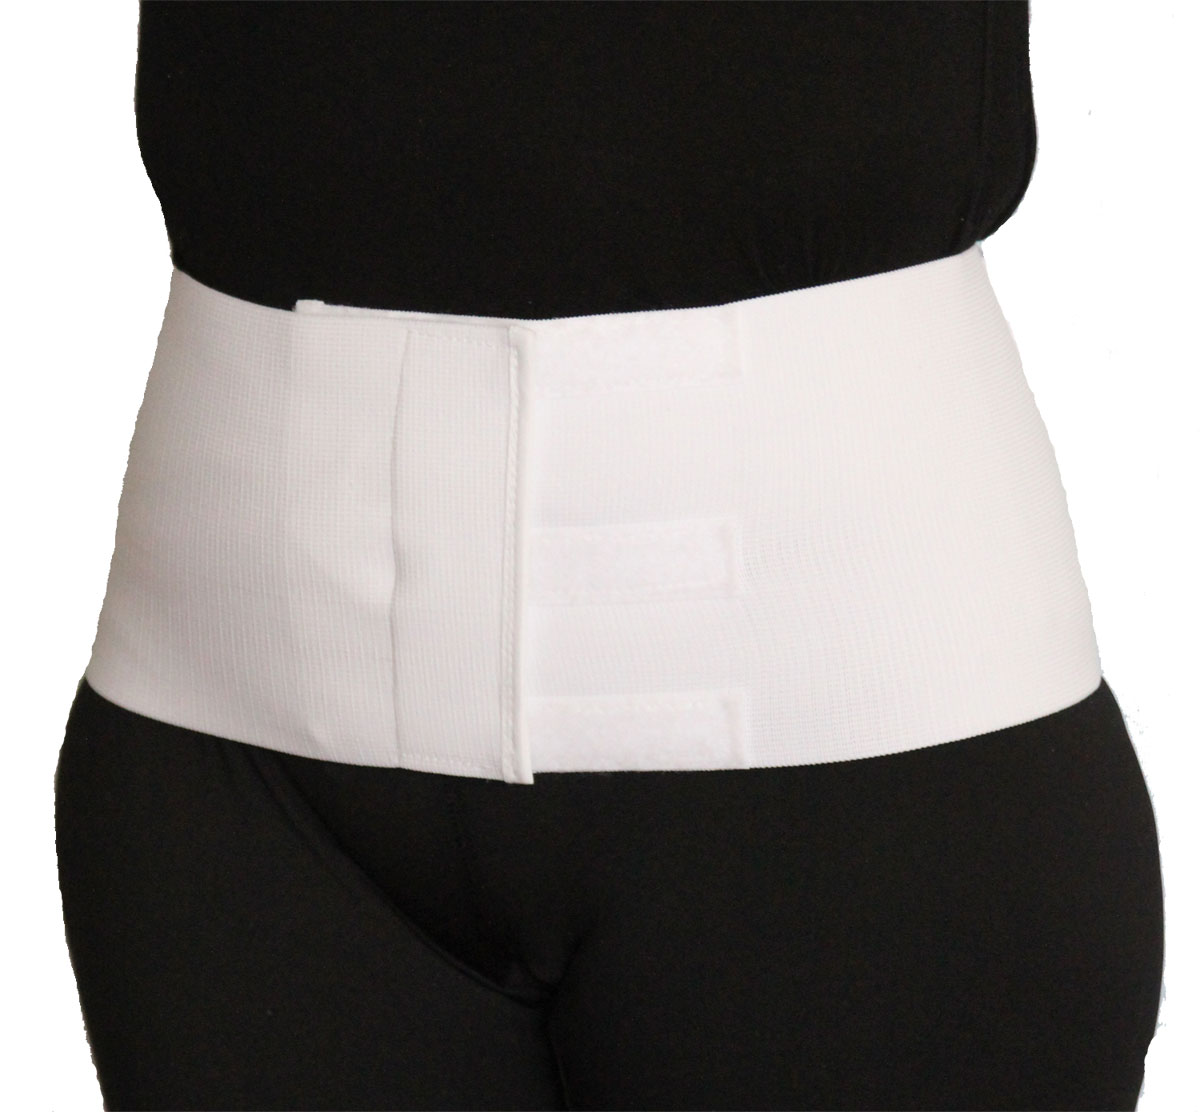 Abdominal Support Binder For Hysterectomy